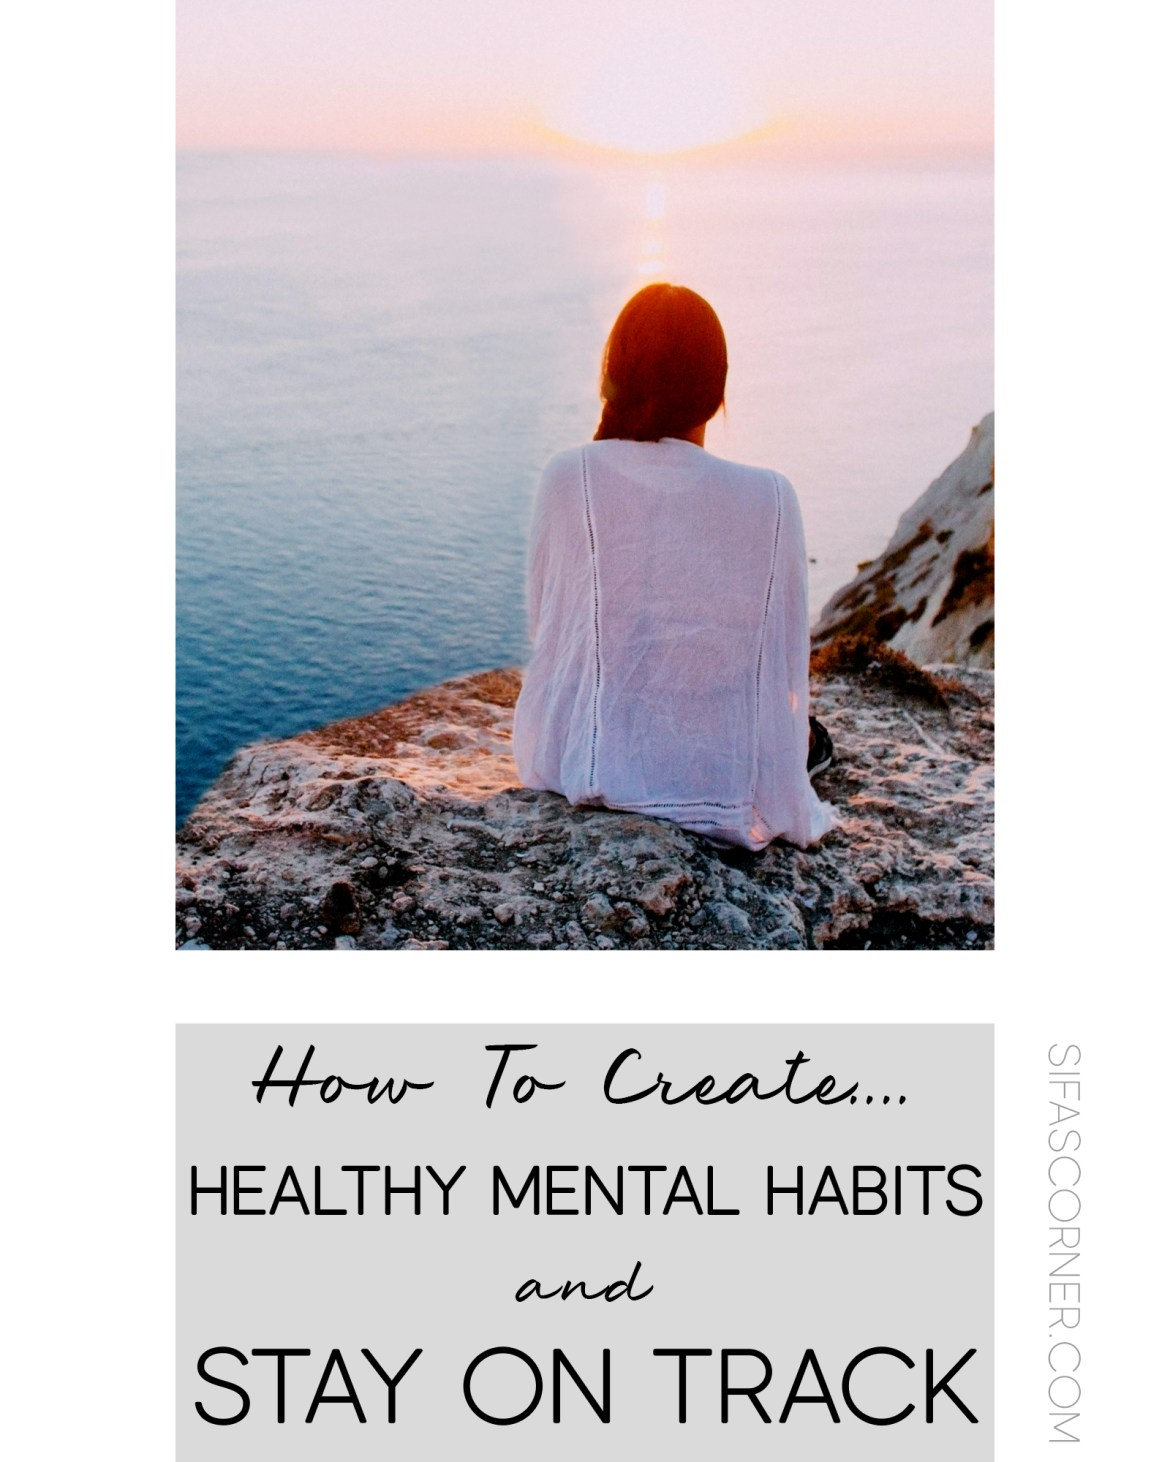 How to create Healthy Mental Health Habits